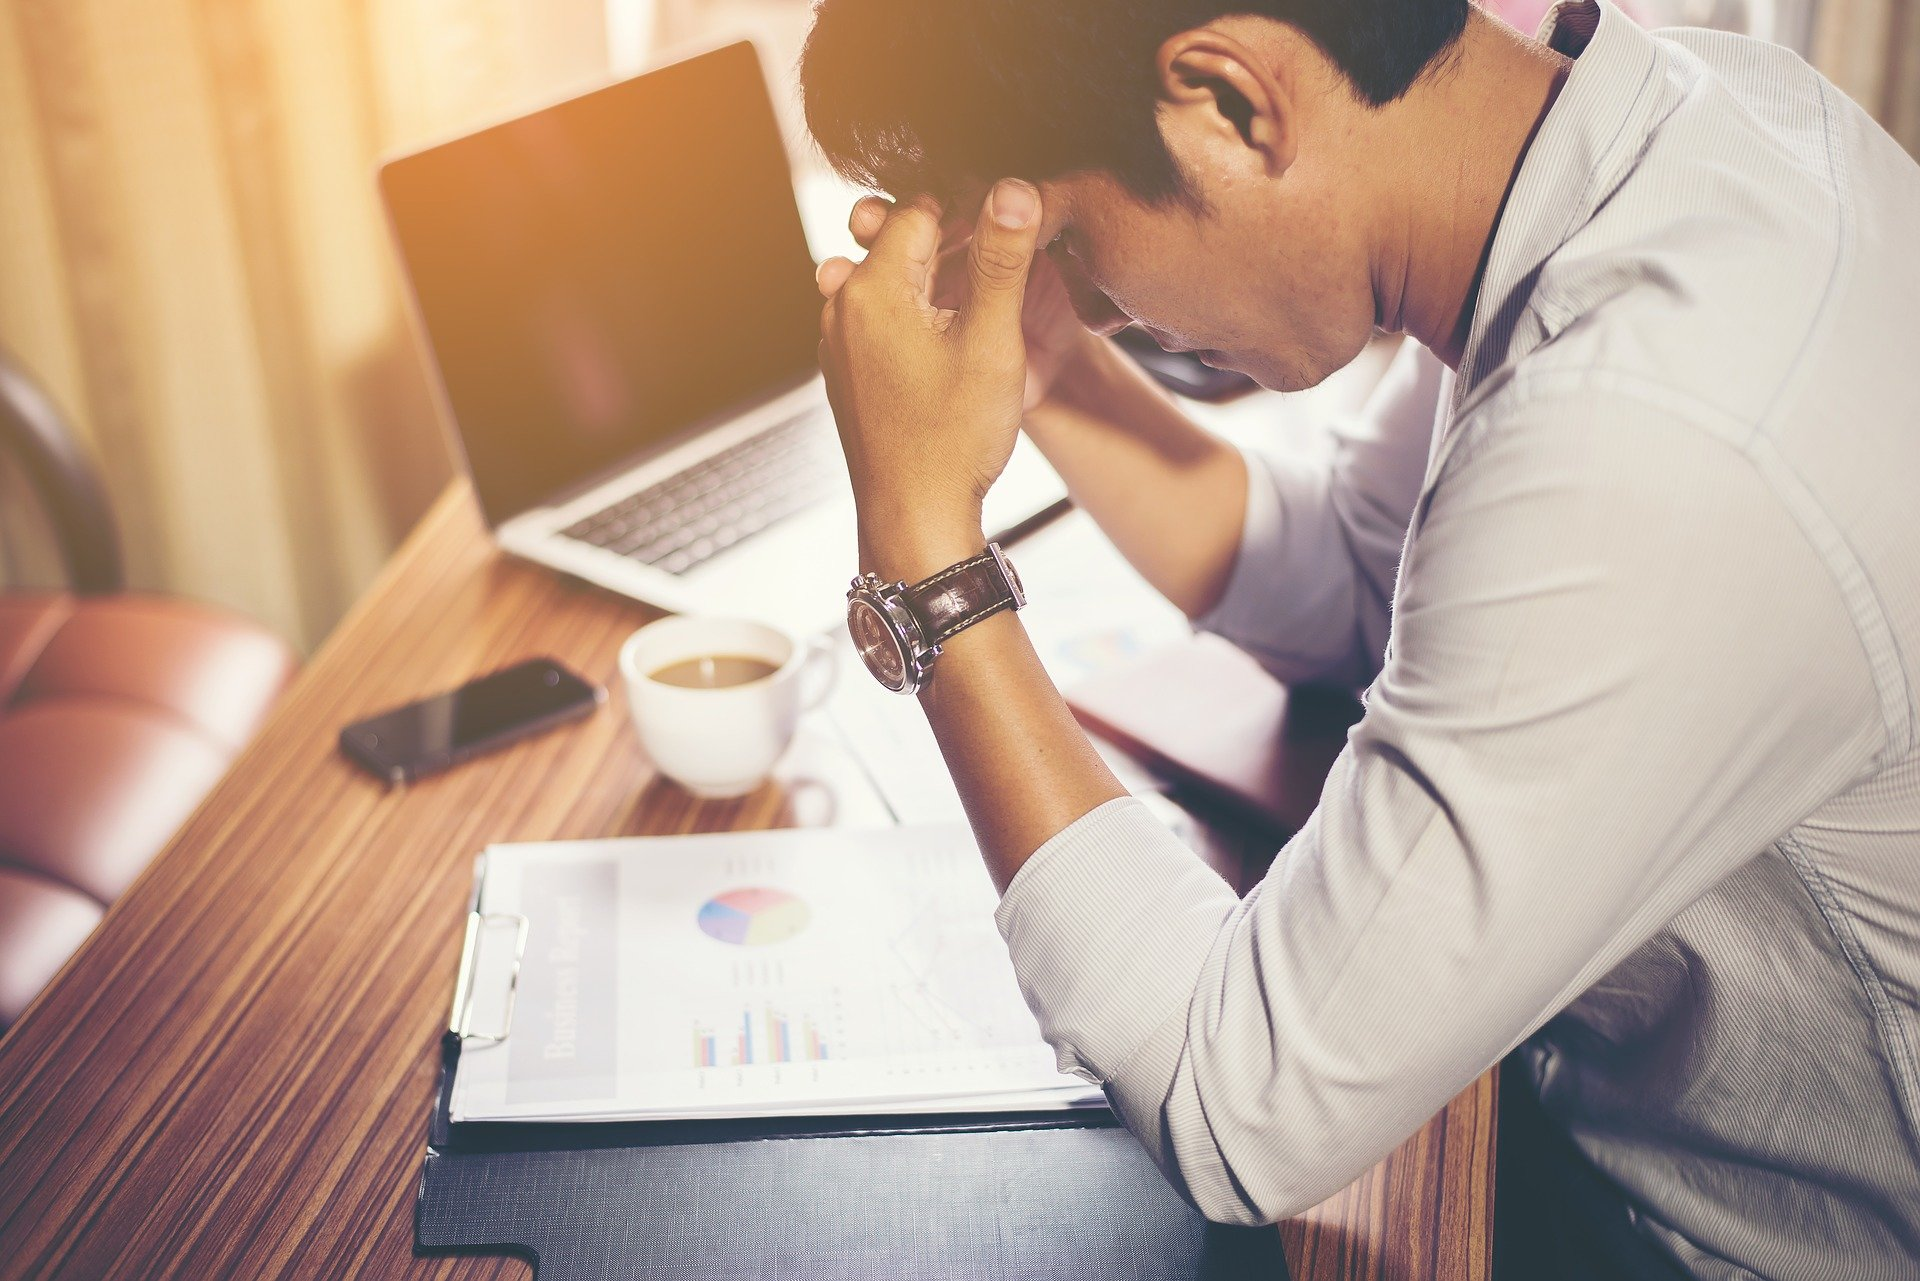 Acute stress may slow down the spread of fears